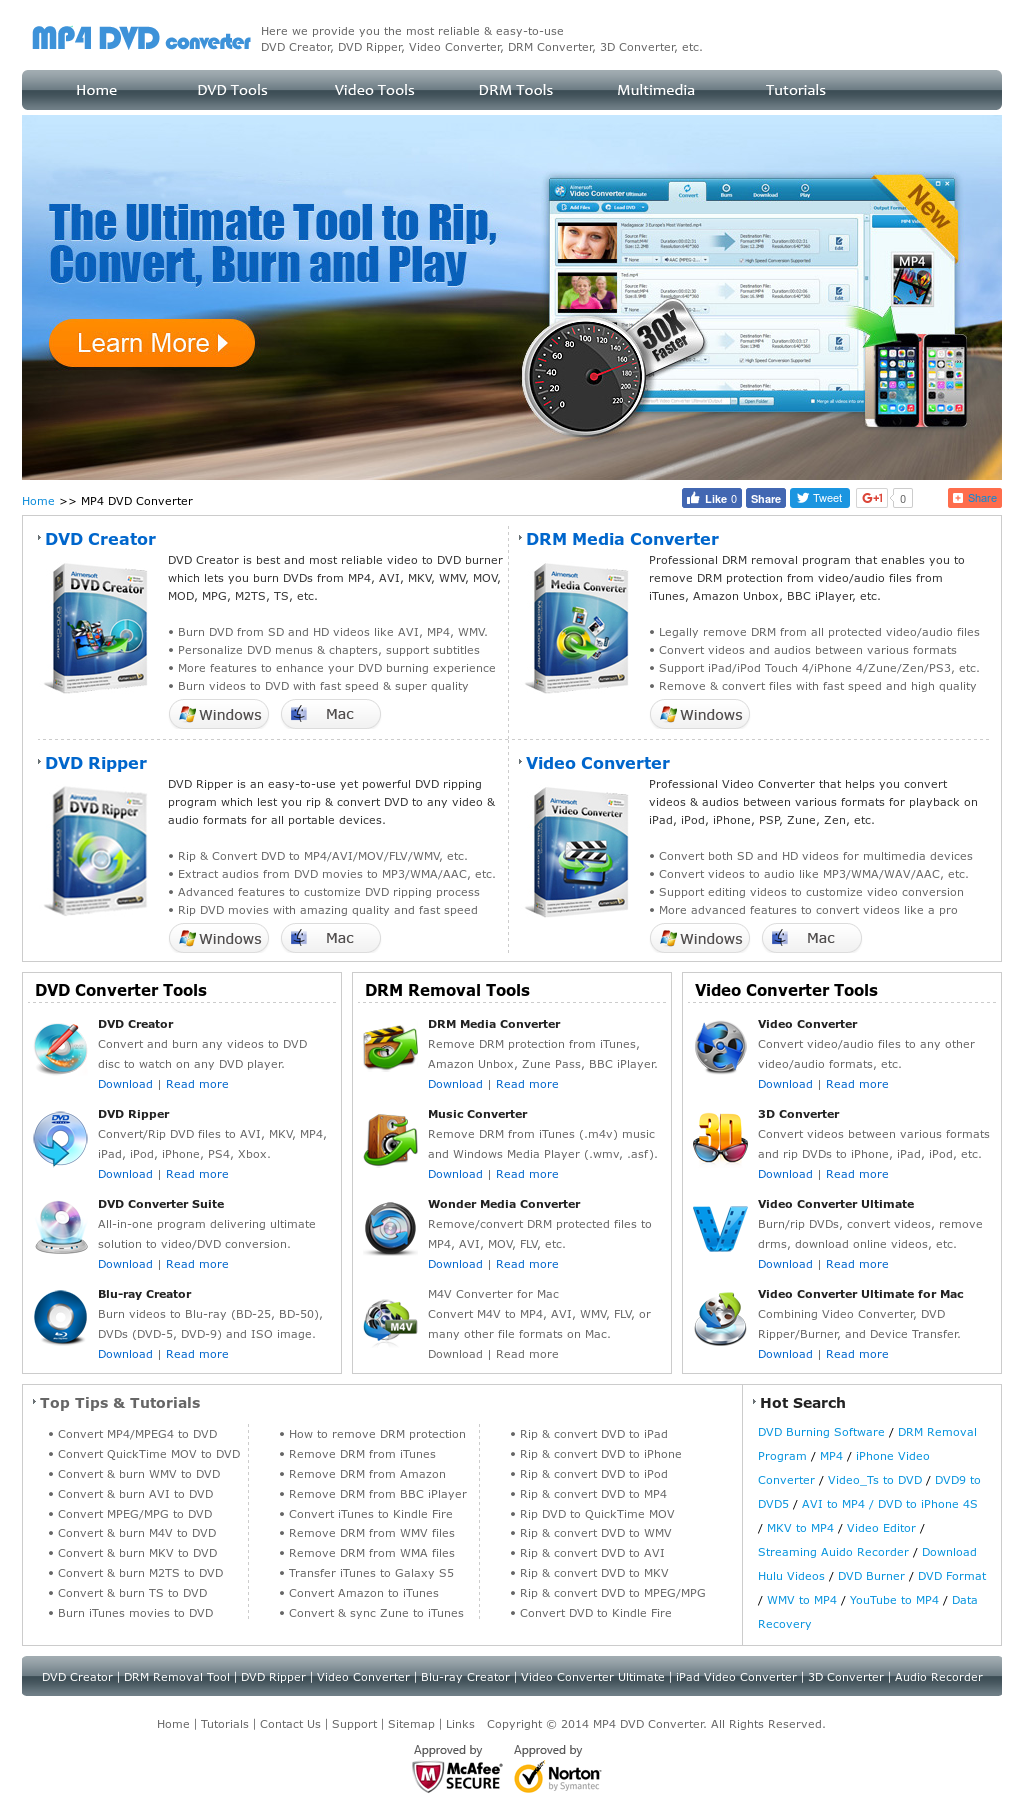 Mp4 Dvd Converter Competitors, Revenue and Employees - Owler